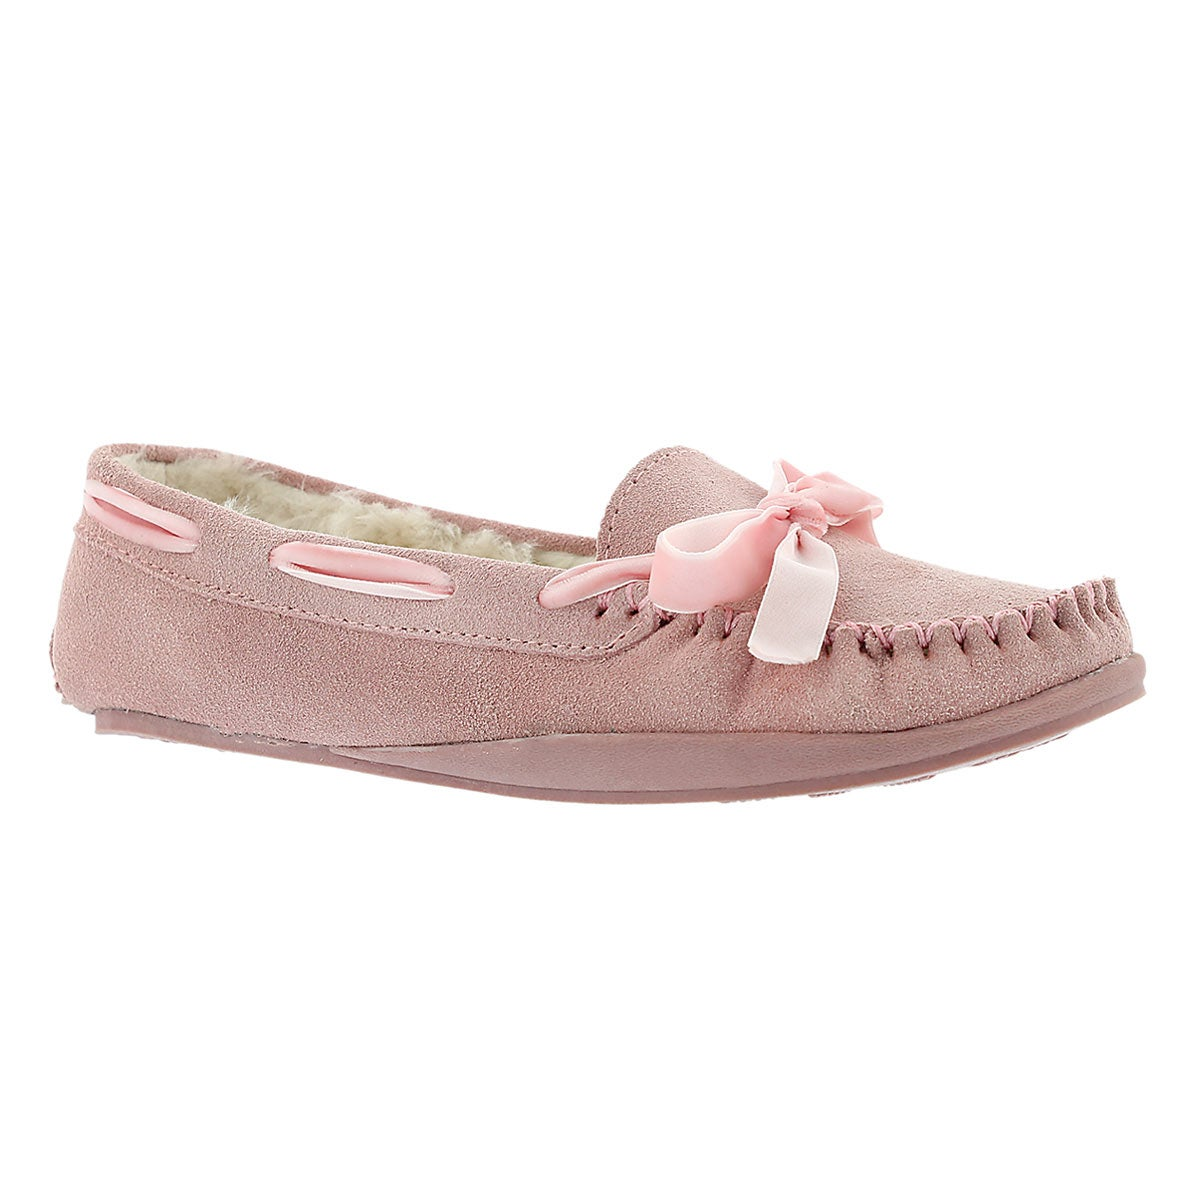 Women's ROCHELLE pink suede moccasins